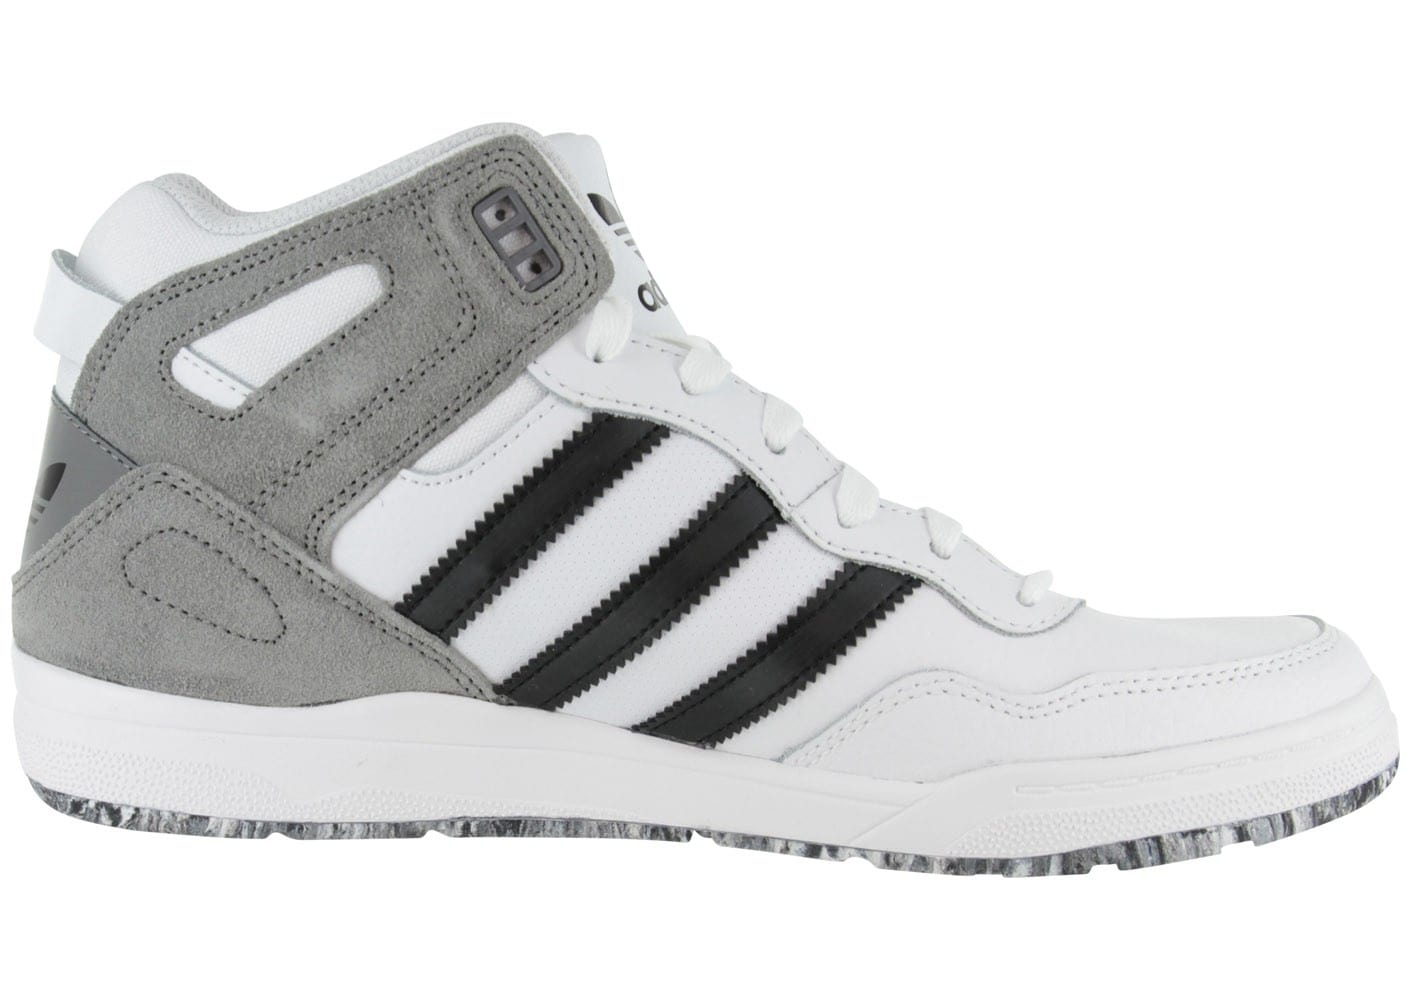 adidas artillery blanche chaussures homme chausport. Black Bedroom Furniture Sets. Home Design Ideas